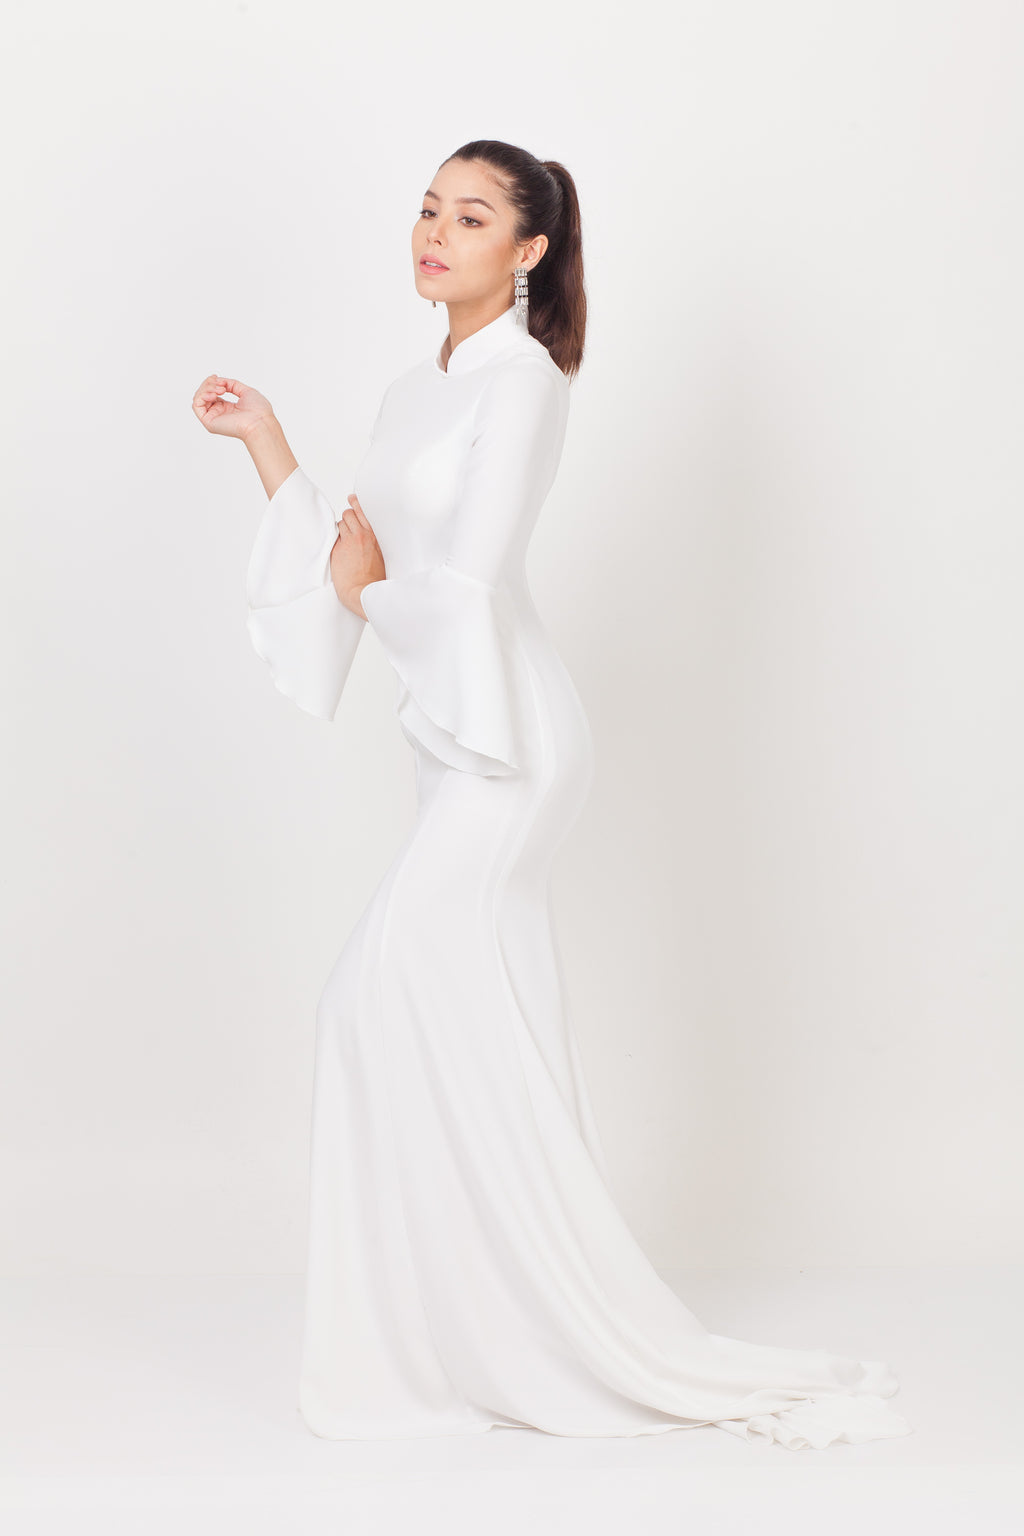 Qipology All White Bell Sleeves Bridal Cheongsam Gown